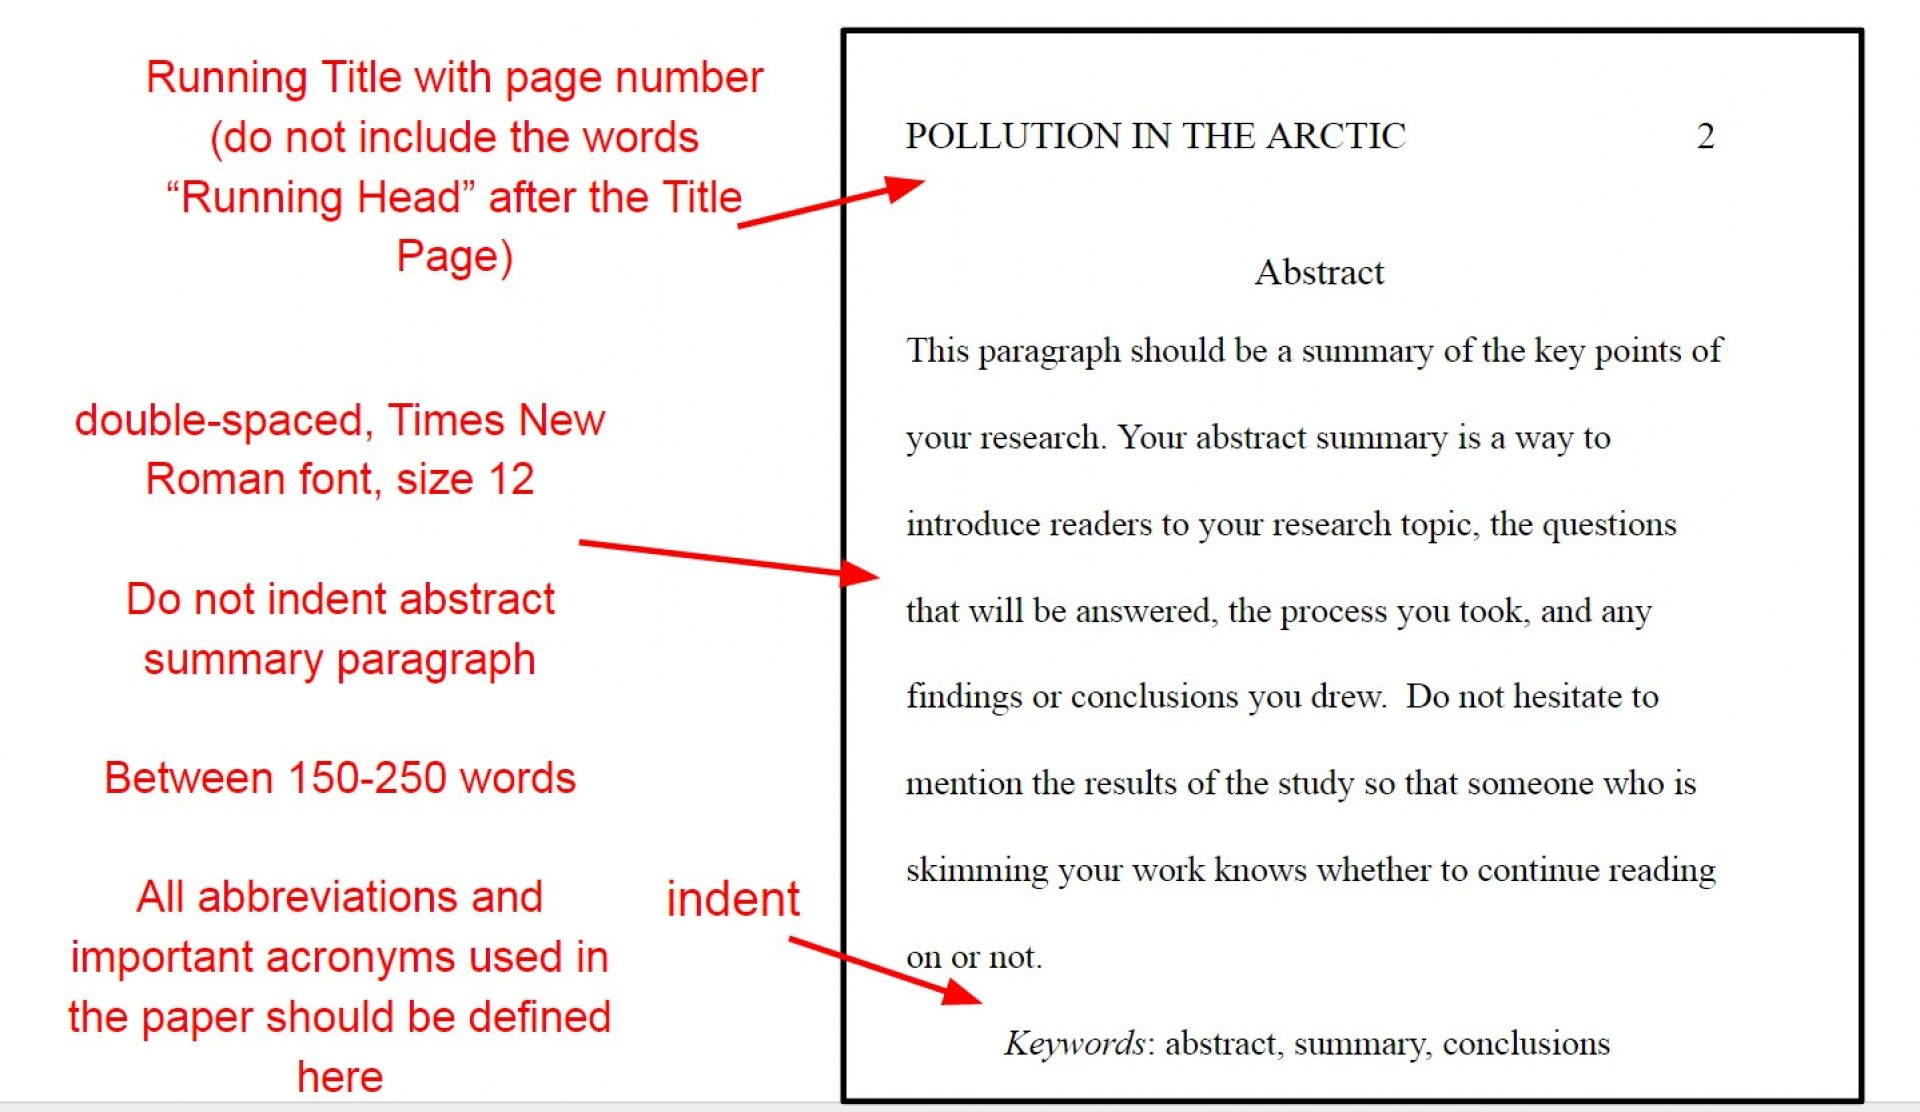 003 Apaabstractyo How To Cite In Research Paper Apa Fearsome A Style Write Bibliography For Format 1920